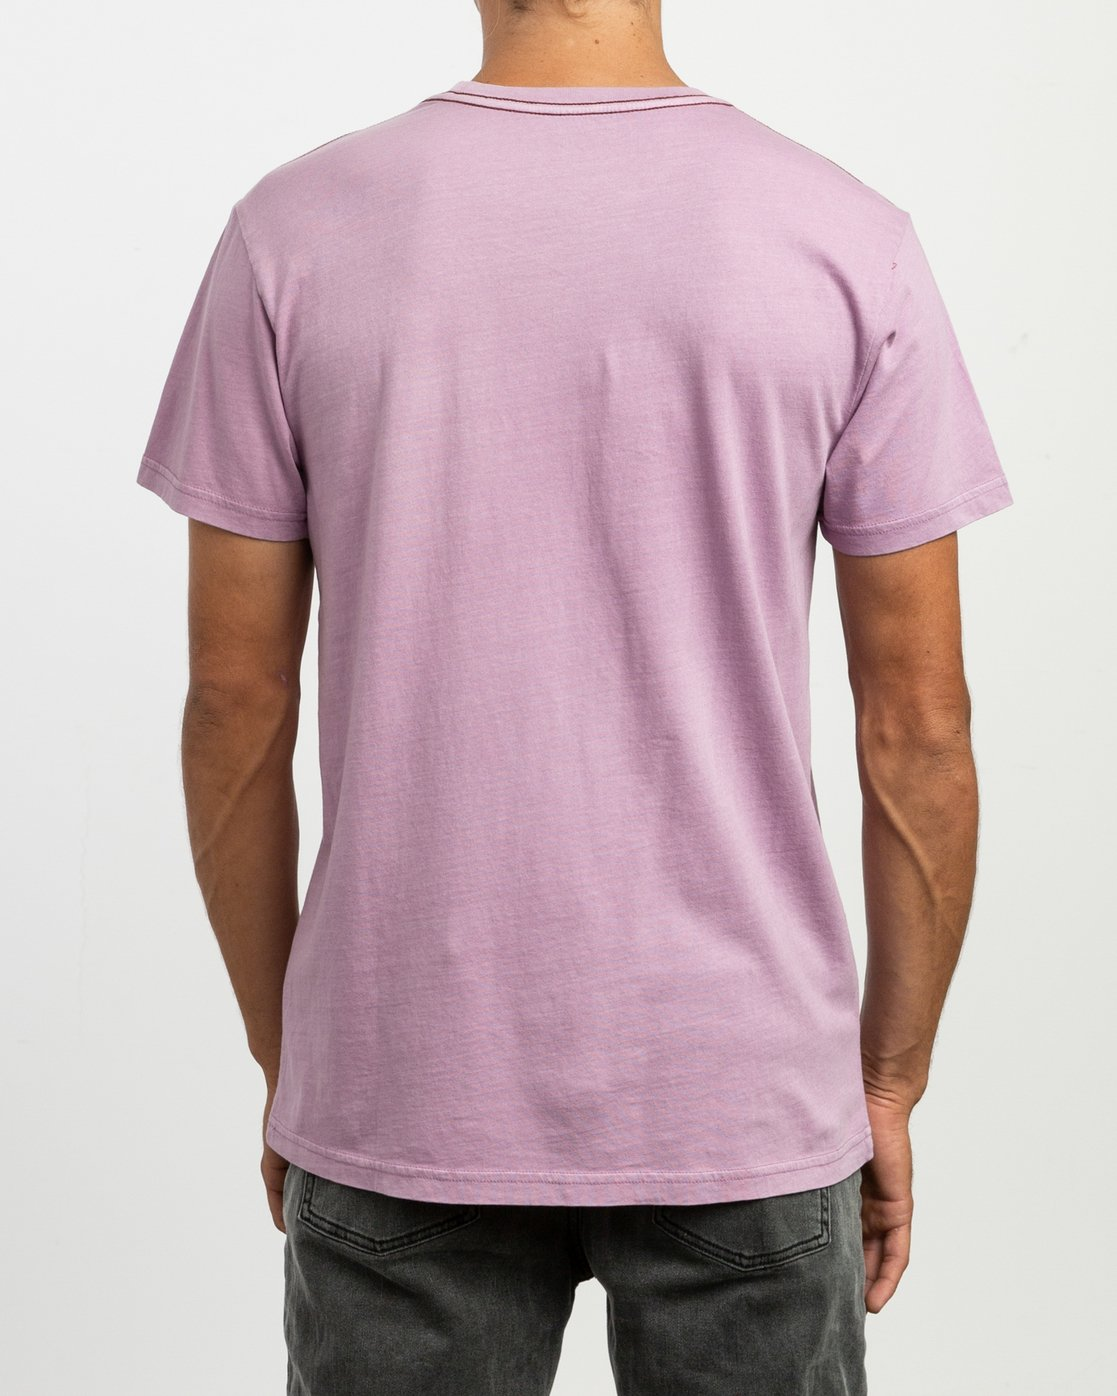 3 PTC 2 Pigment - Knit Top for Men Violett H1KTRCRVP8 RVCA